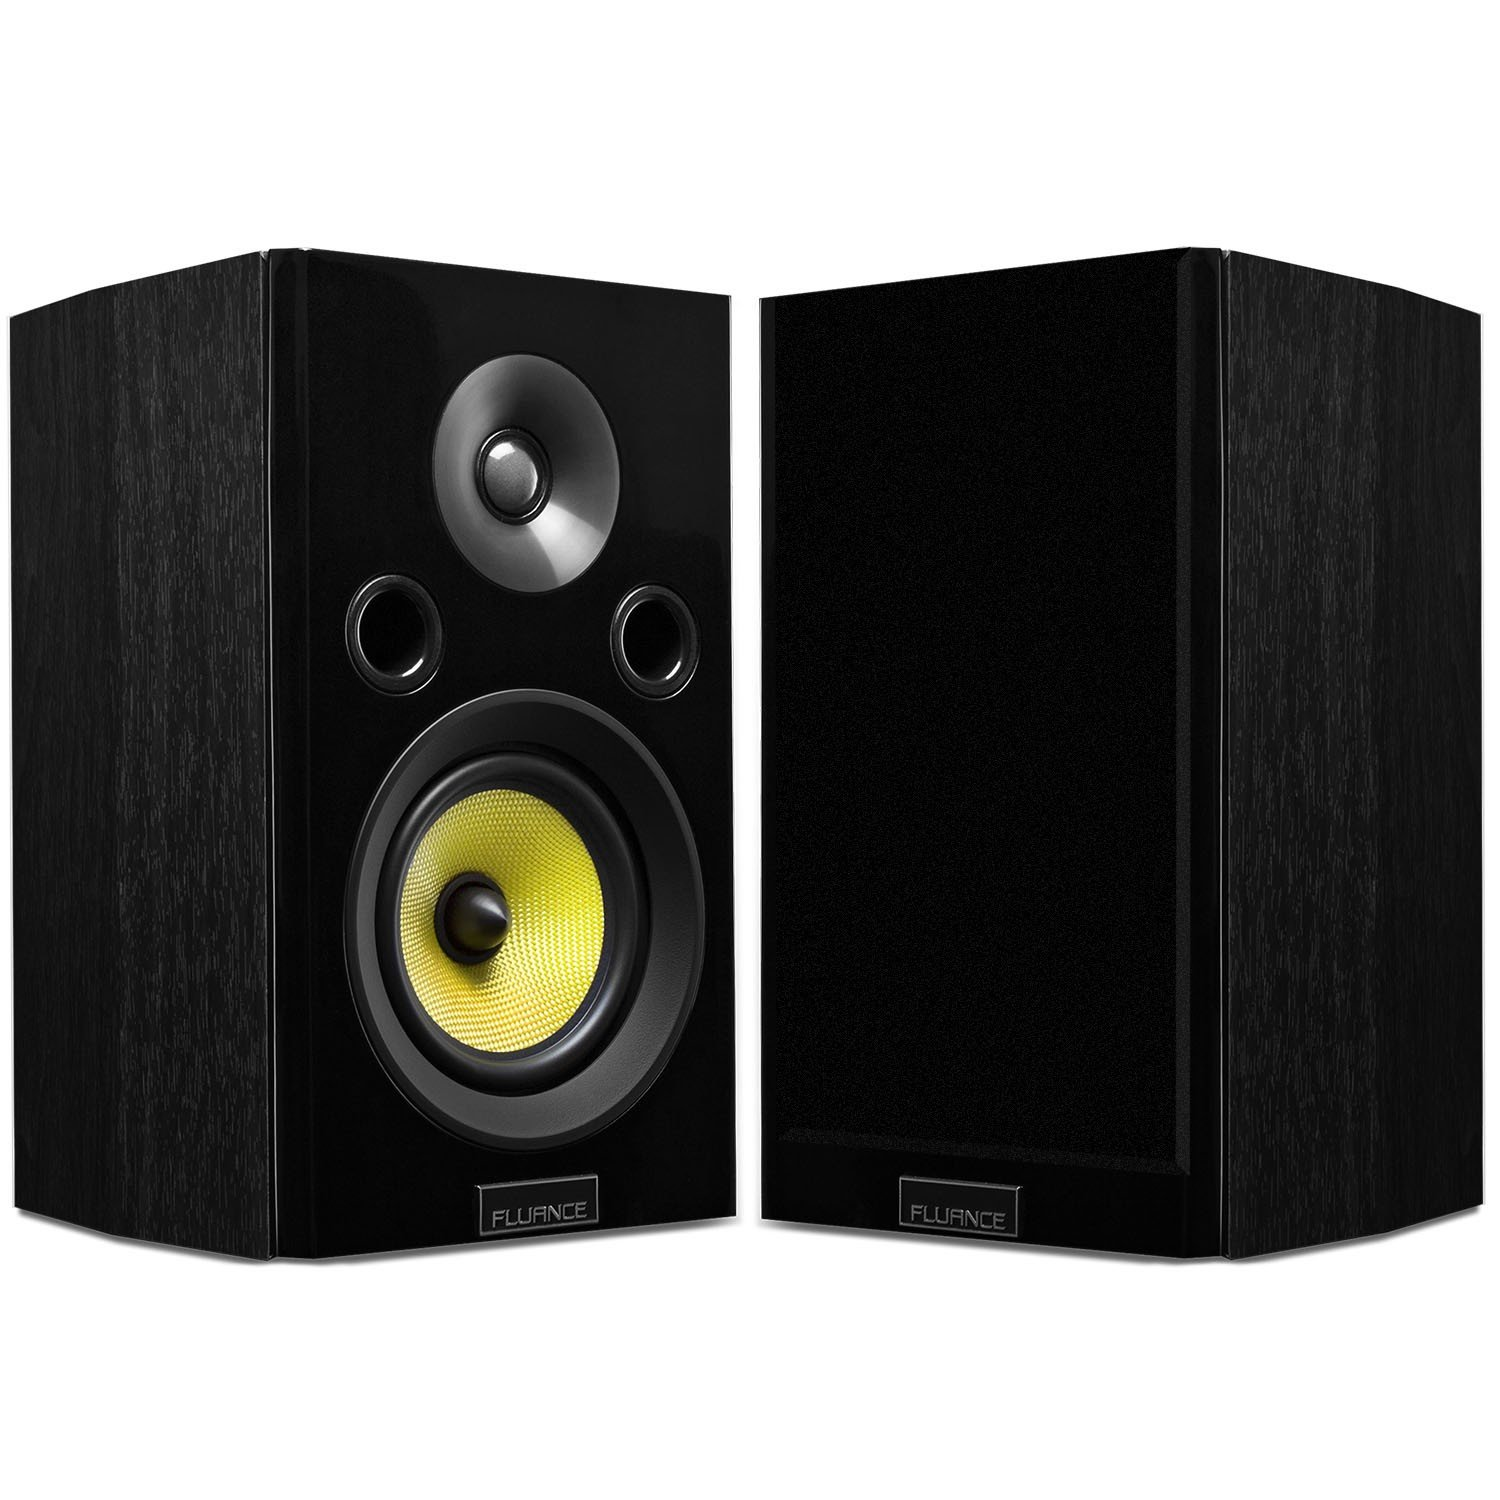 HFS Signature Series Two Way Bookshelf Surround Sound Speakers